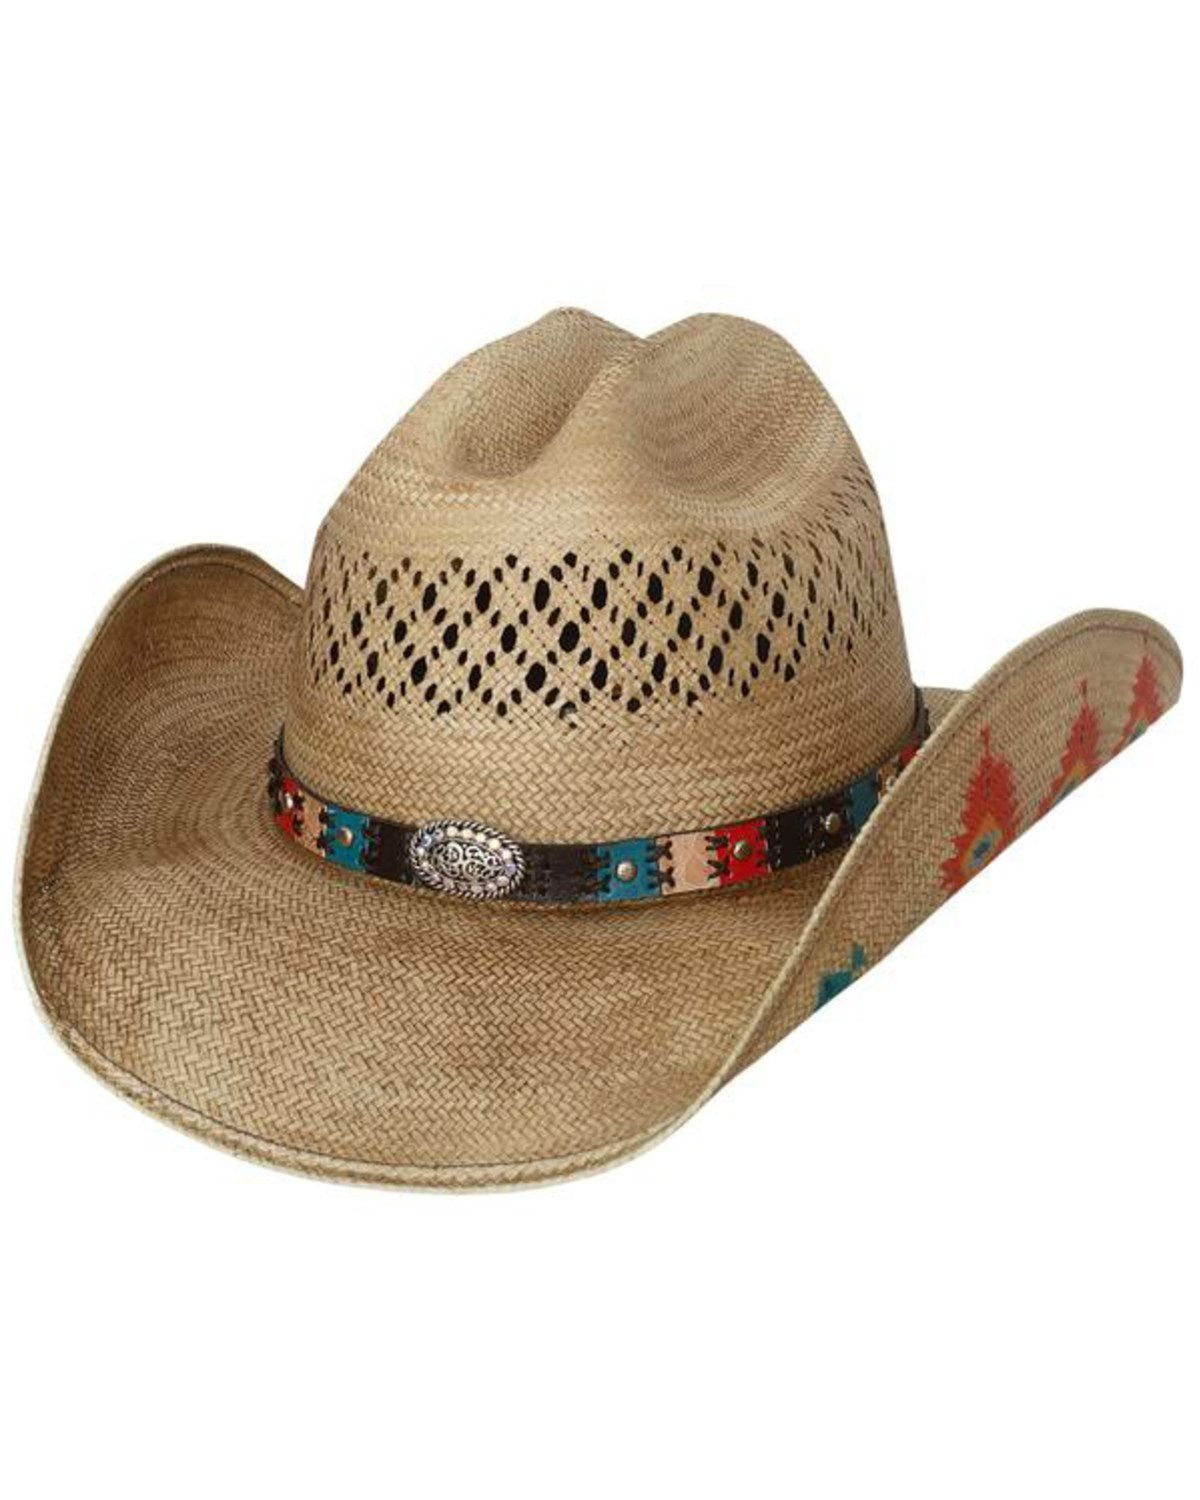 7b030b3d4 Bullhide Women's Custer Trail Painted Aztec Cowgirl Hat in 2019 | My ...